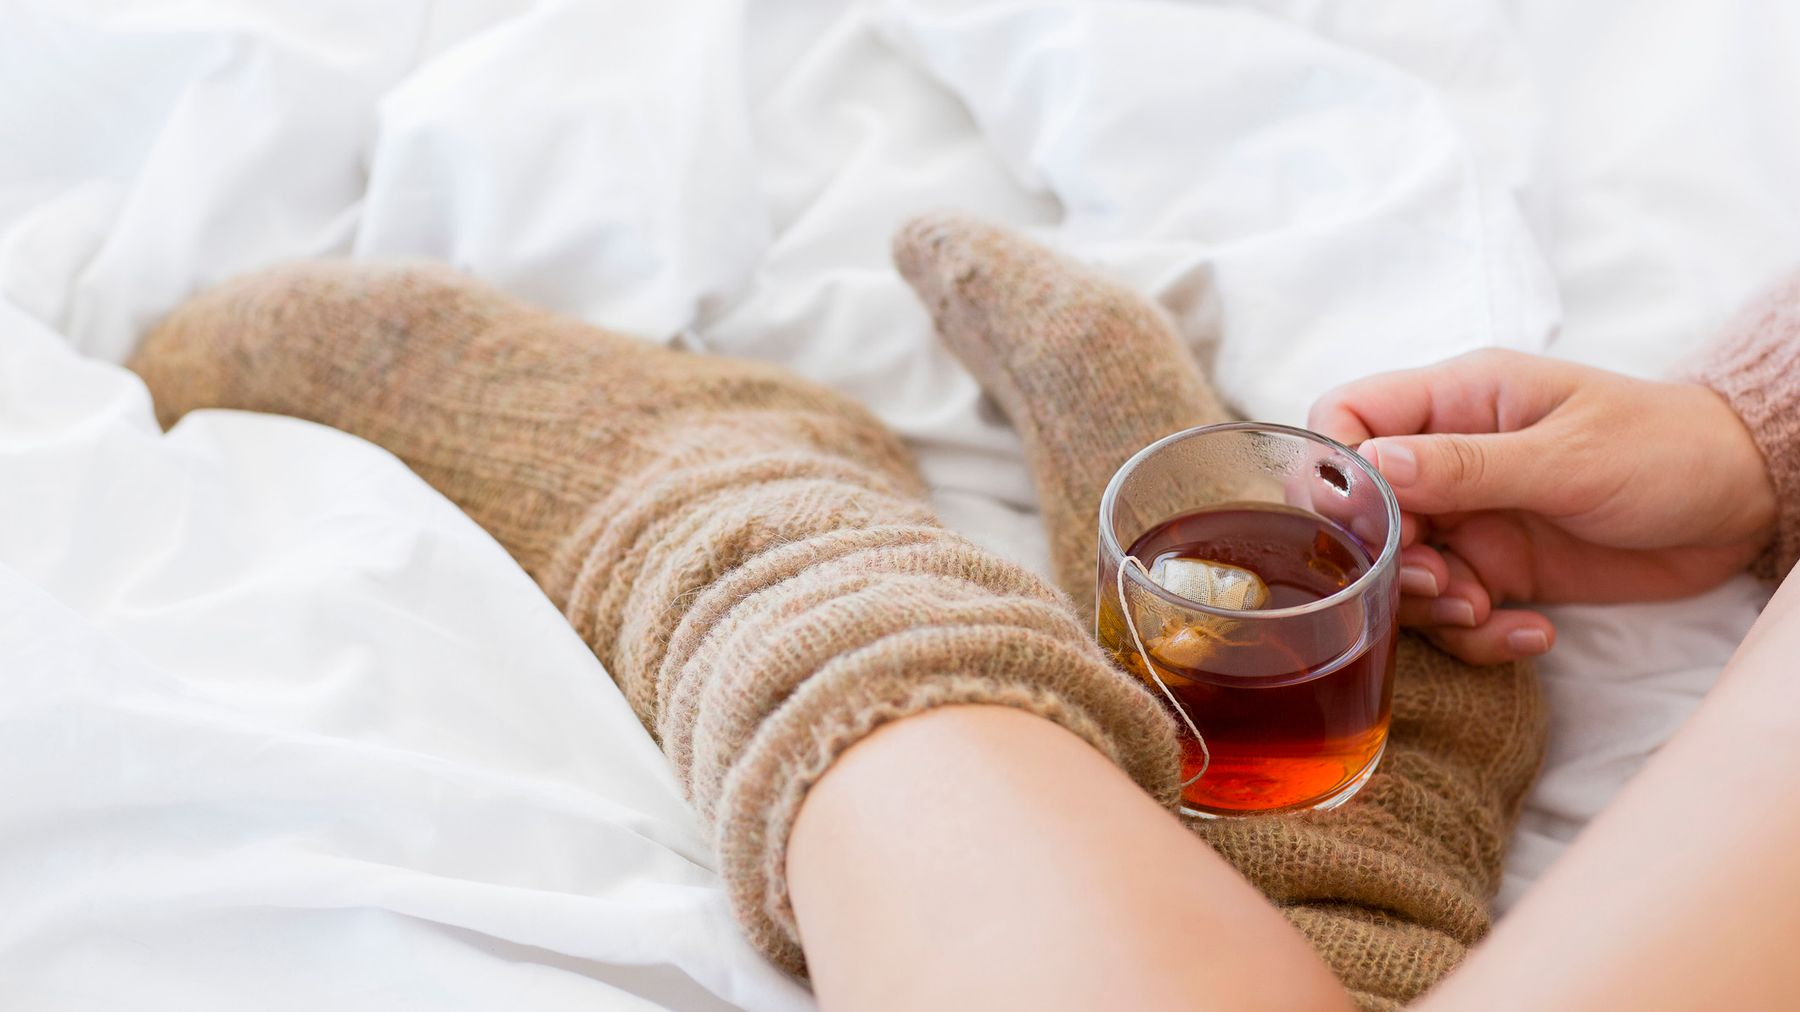 The Health Benefits and Uses of Detox and Herbal Teas